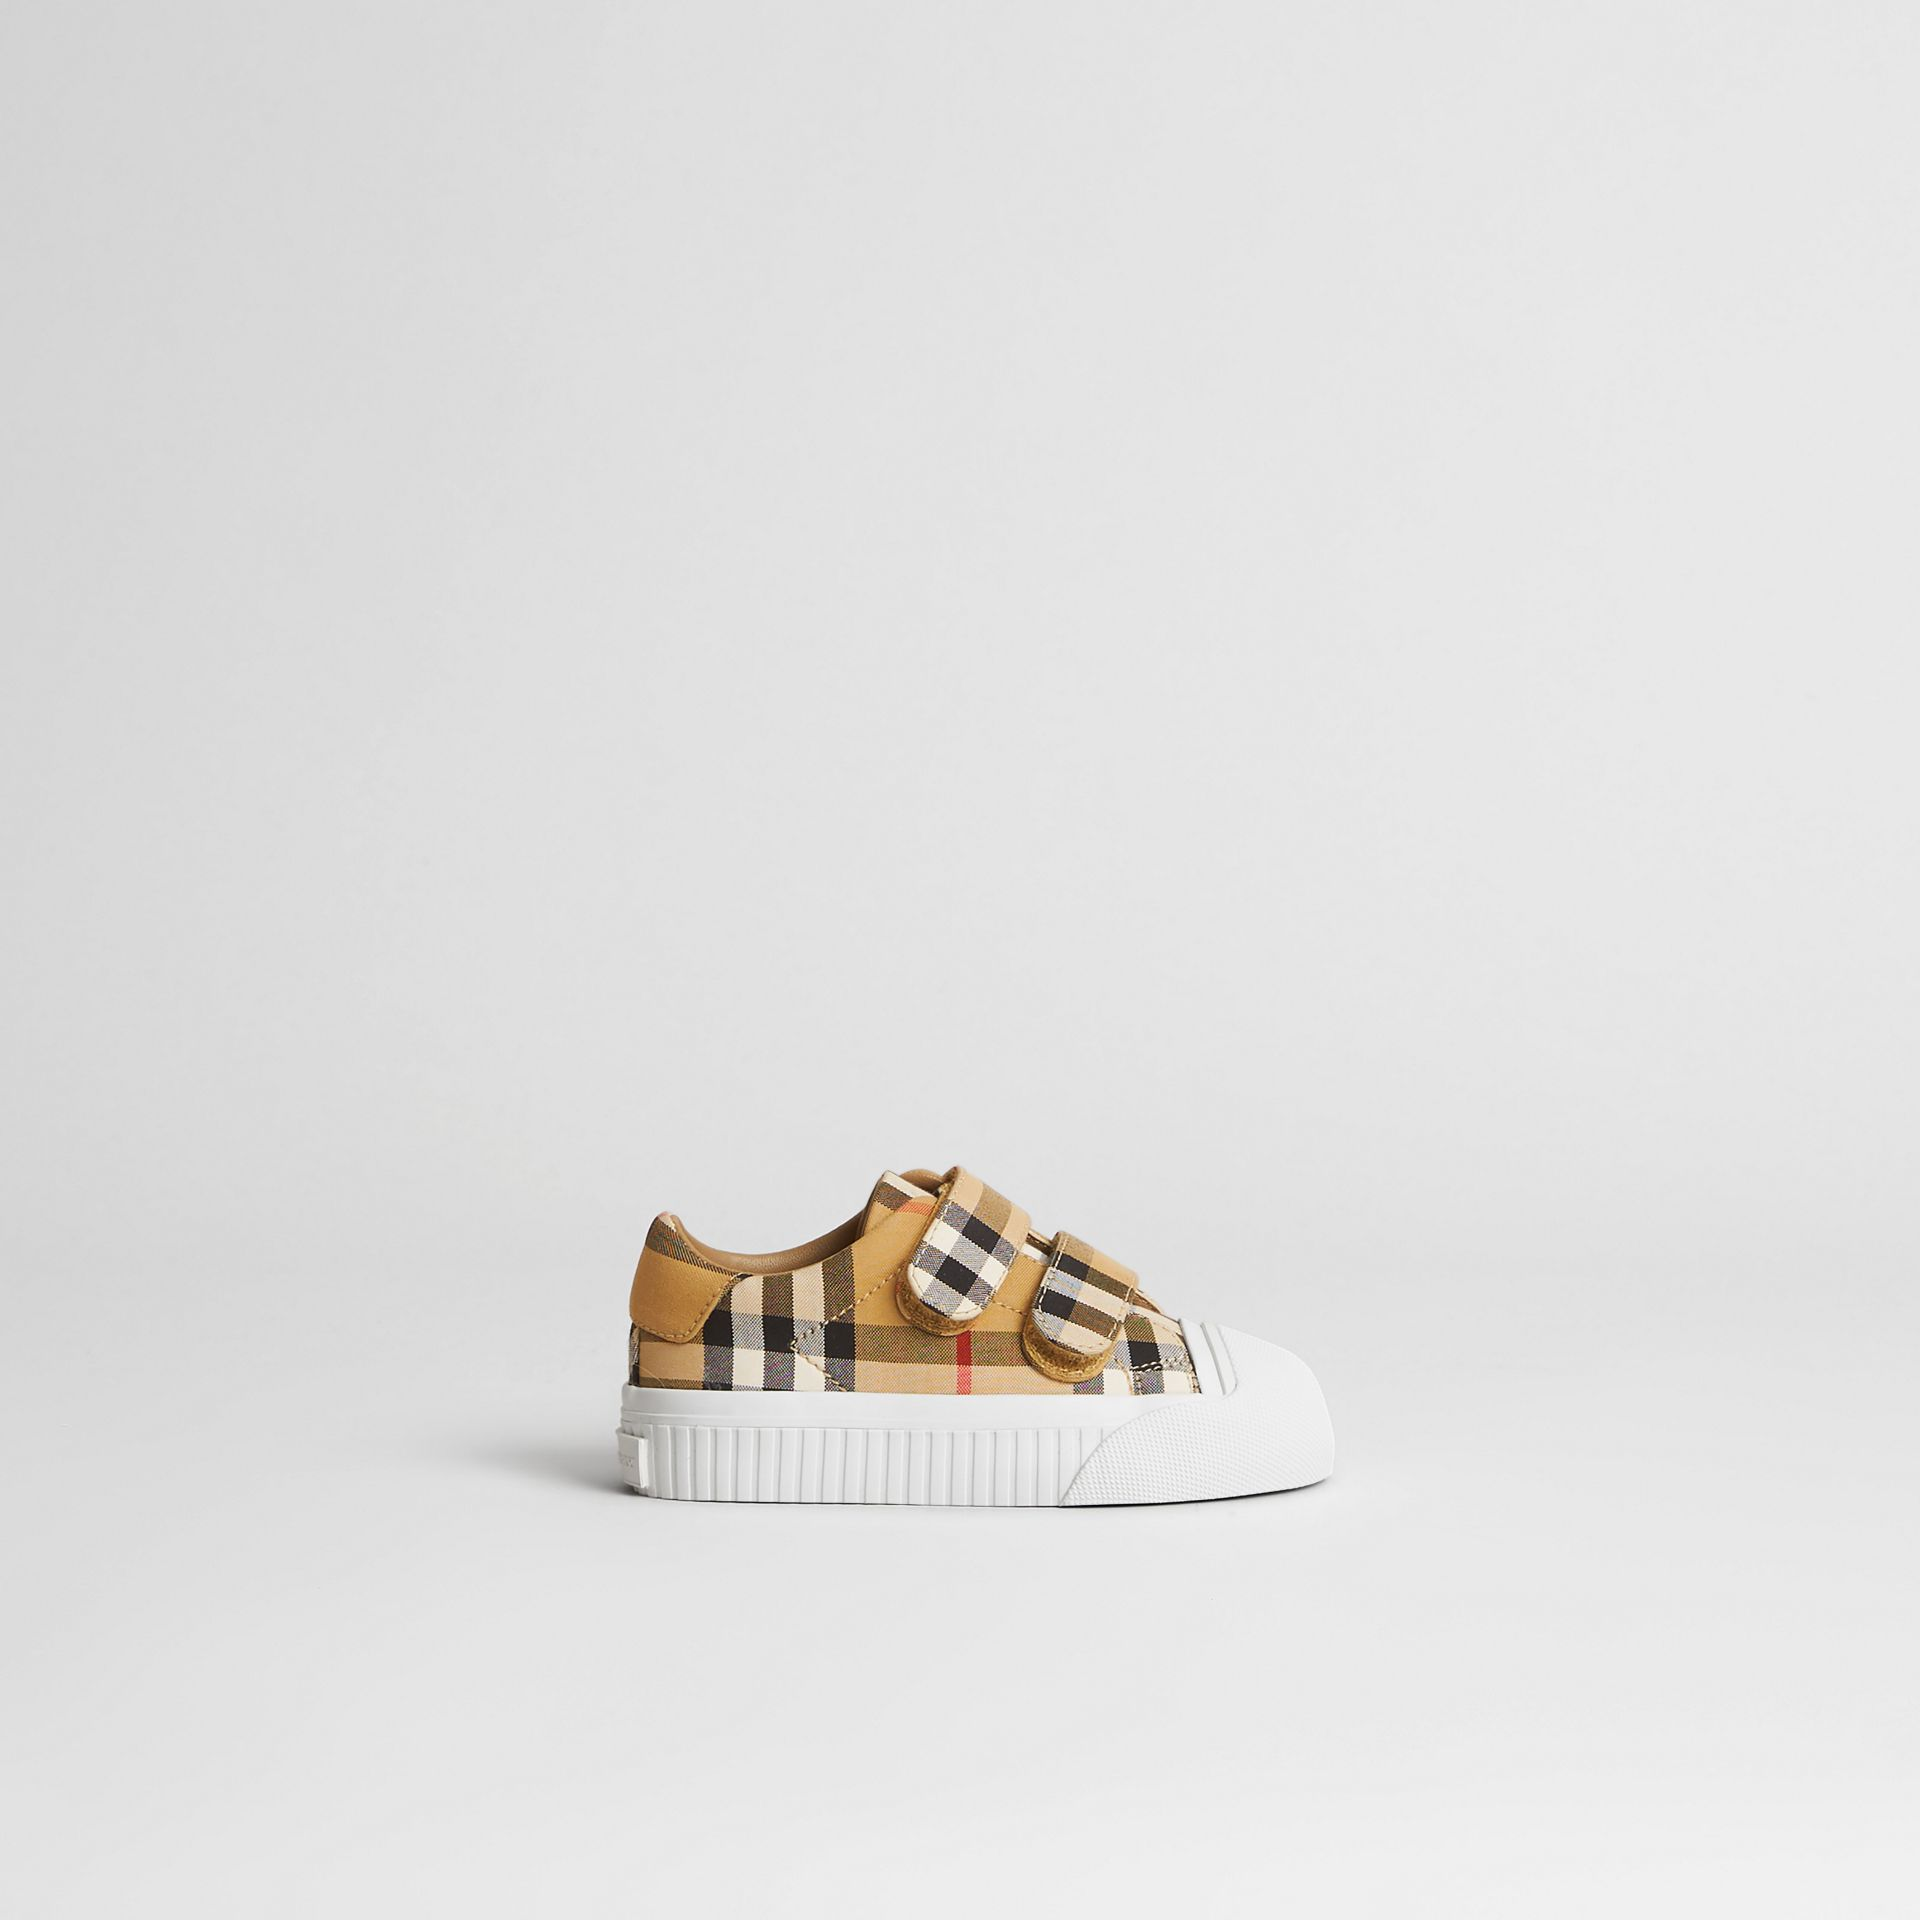 Sneakers en cuir à motif Vintage check (Blanc Optique/noir) - Enfant | Burberry - photo de la galerie 3